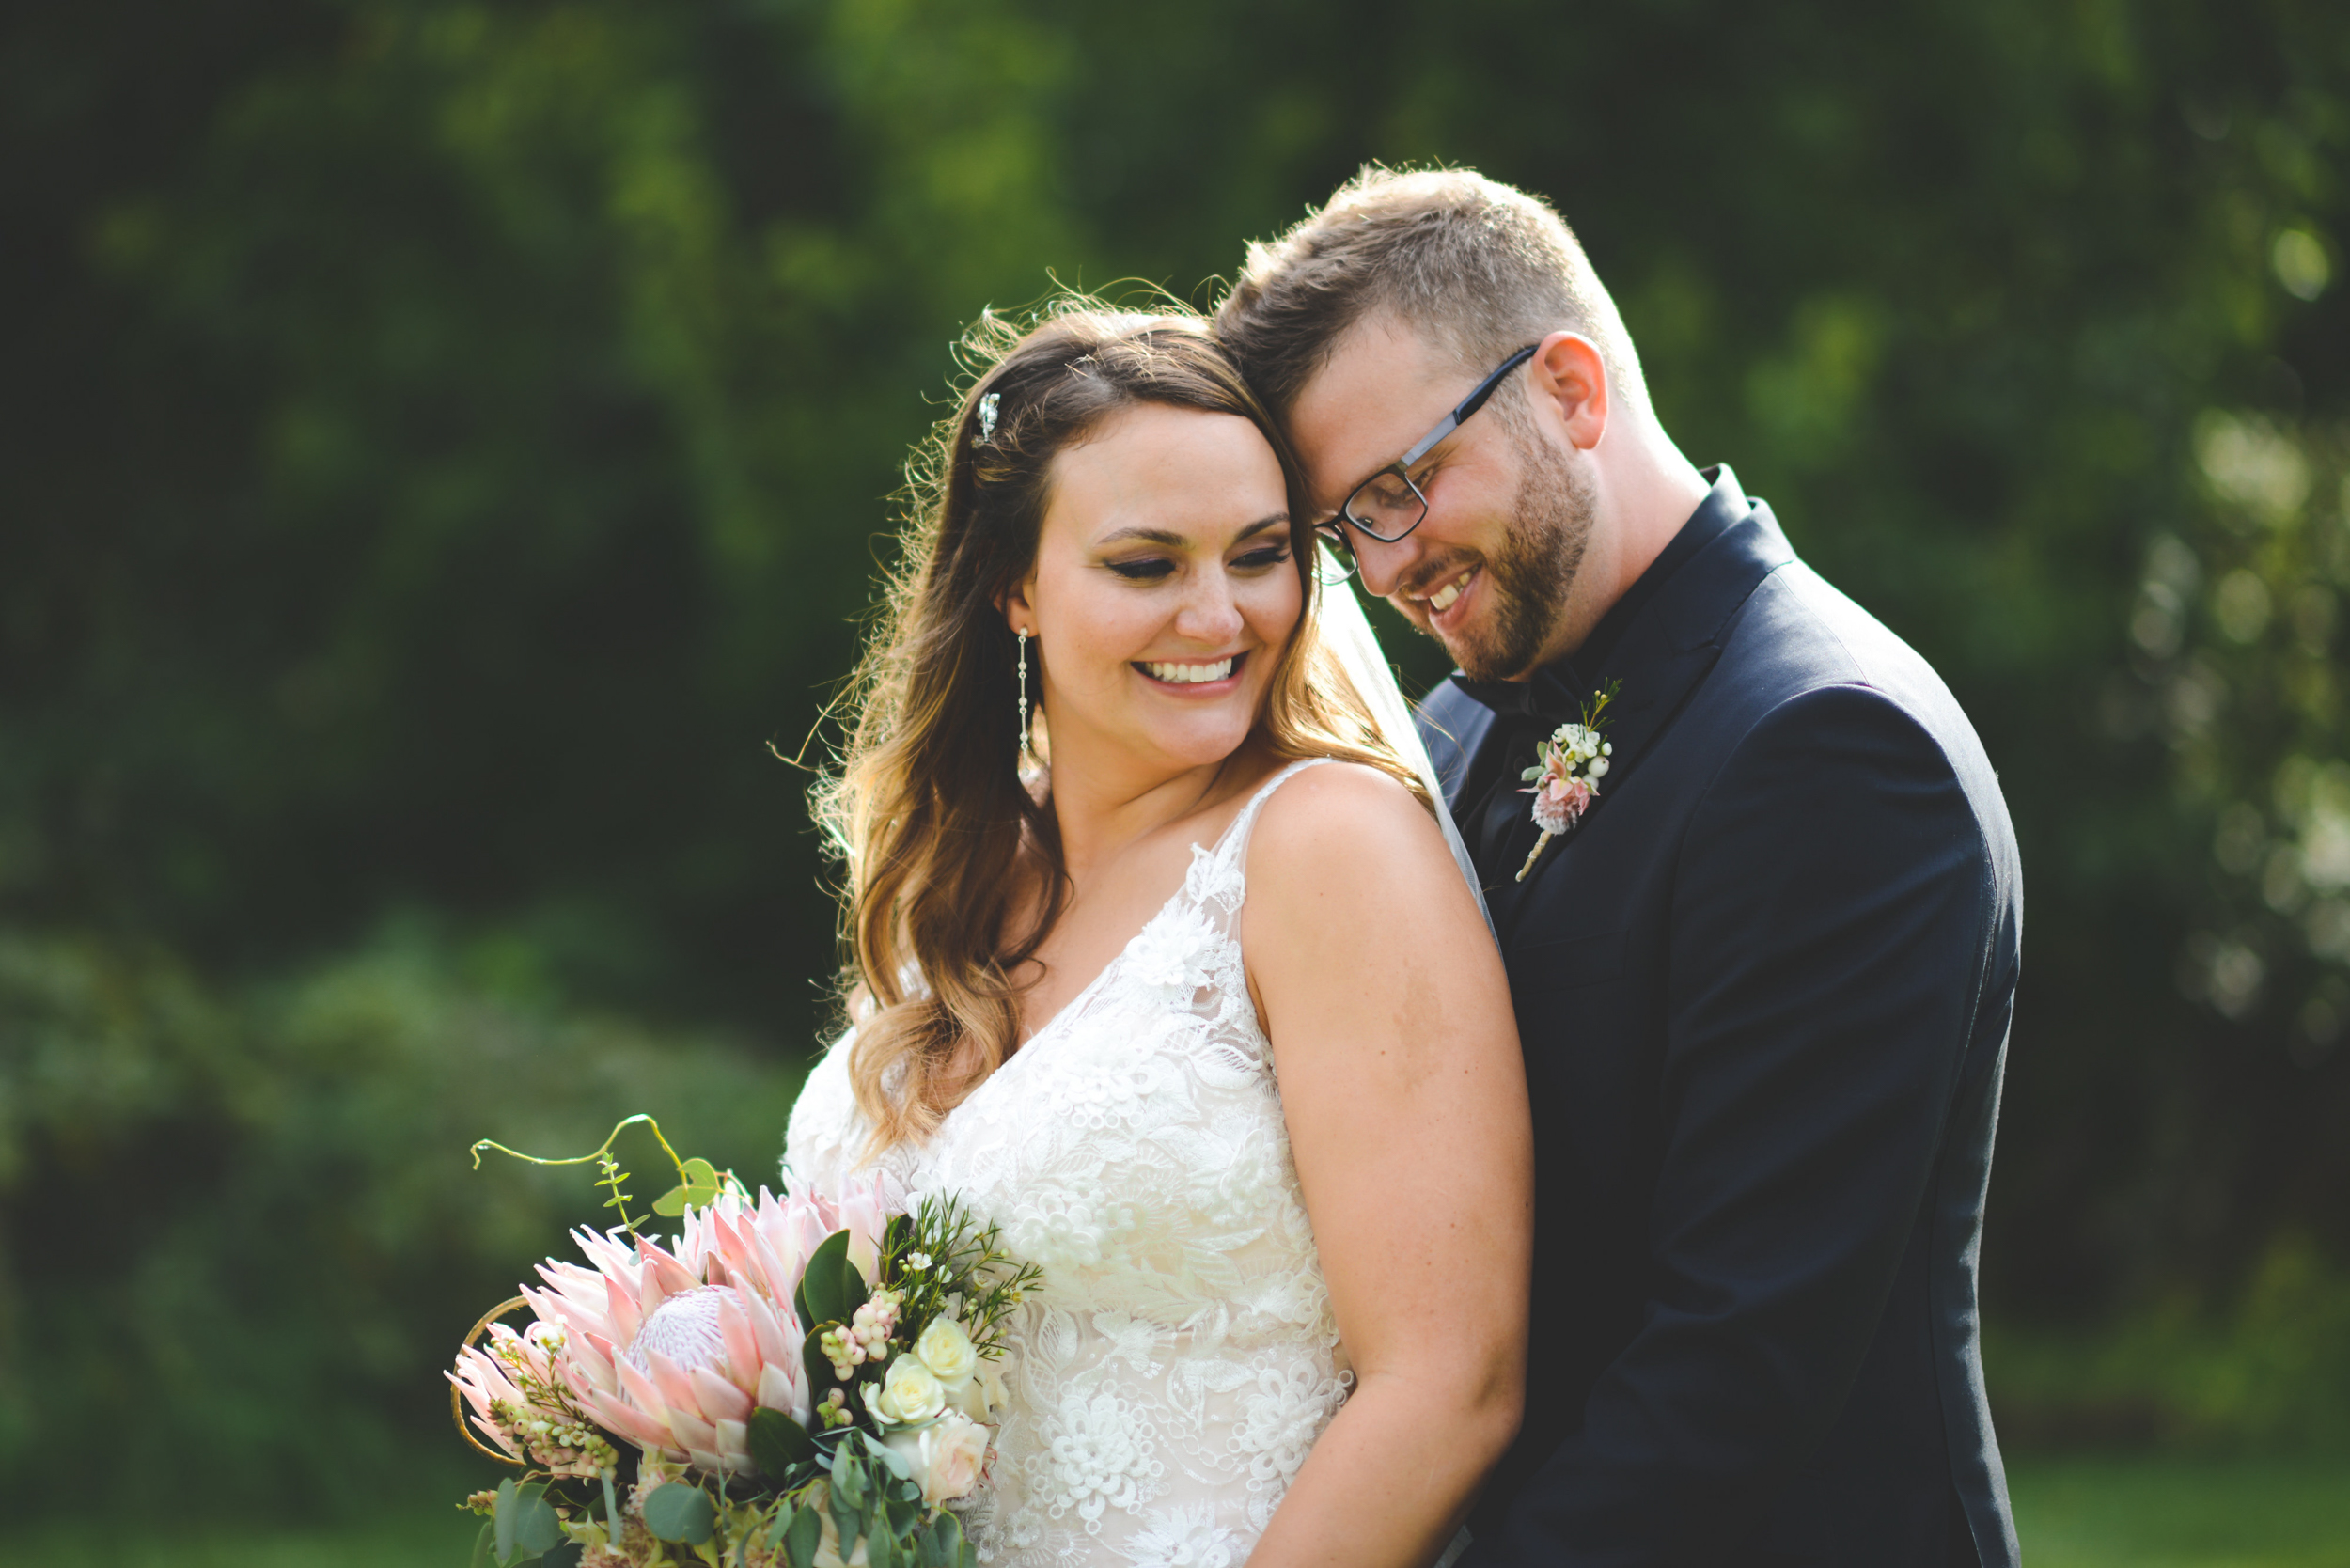 Indianapolis wedding photography - Mustard Seed Gardens - Moss wedding